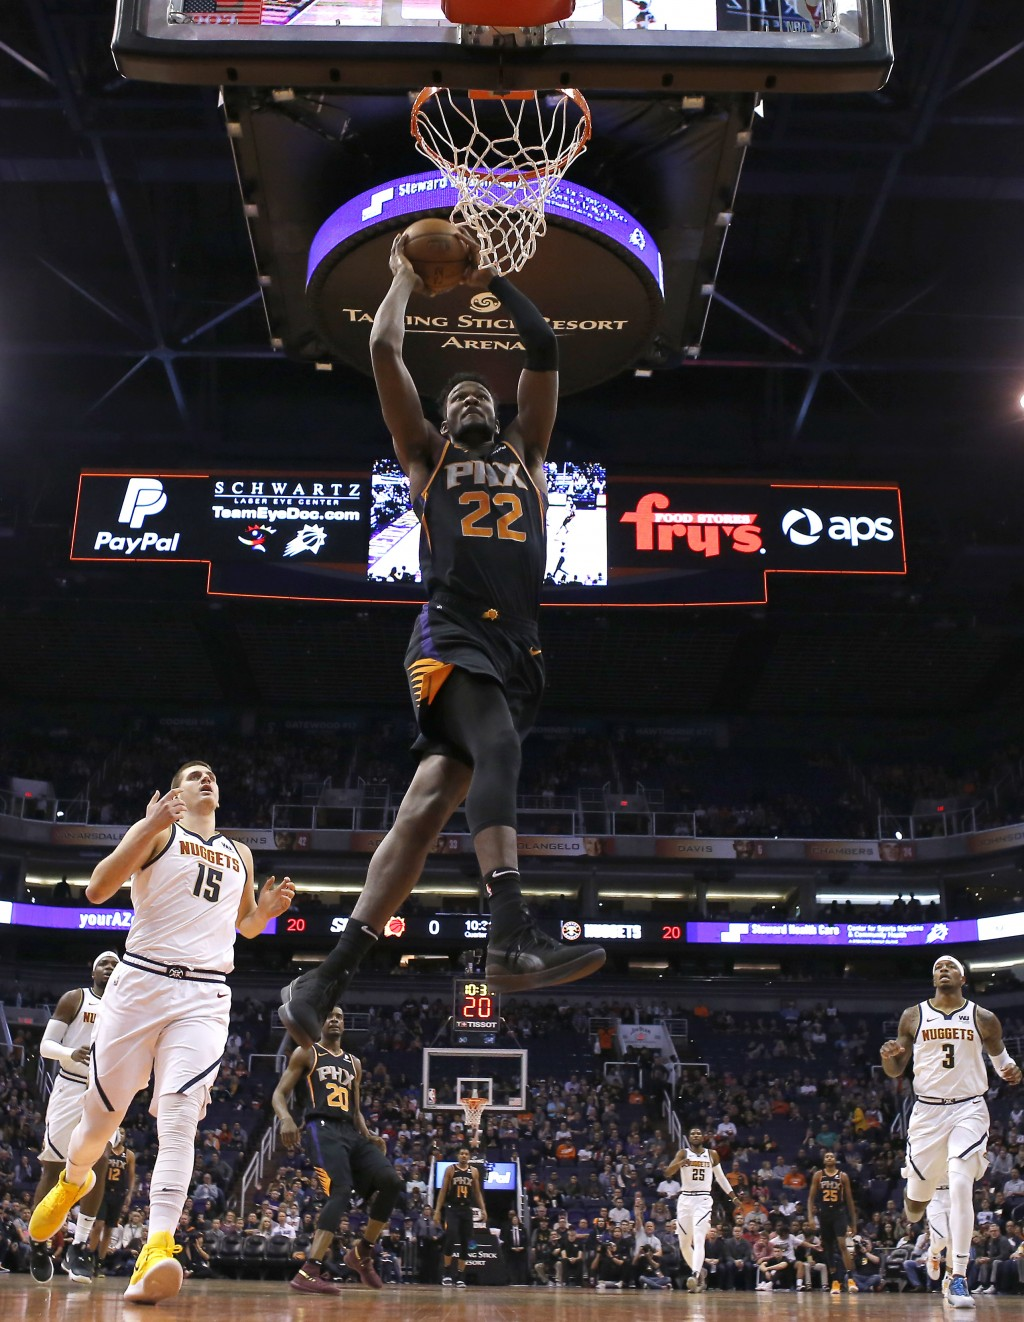 Phoenix Suns center Deandre Ayton (22) dunks against the Denver Nuggets in the second half during an NBA basketball game, Saturday, Jan. 12, 2019, in